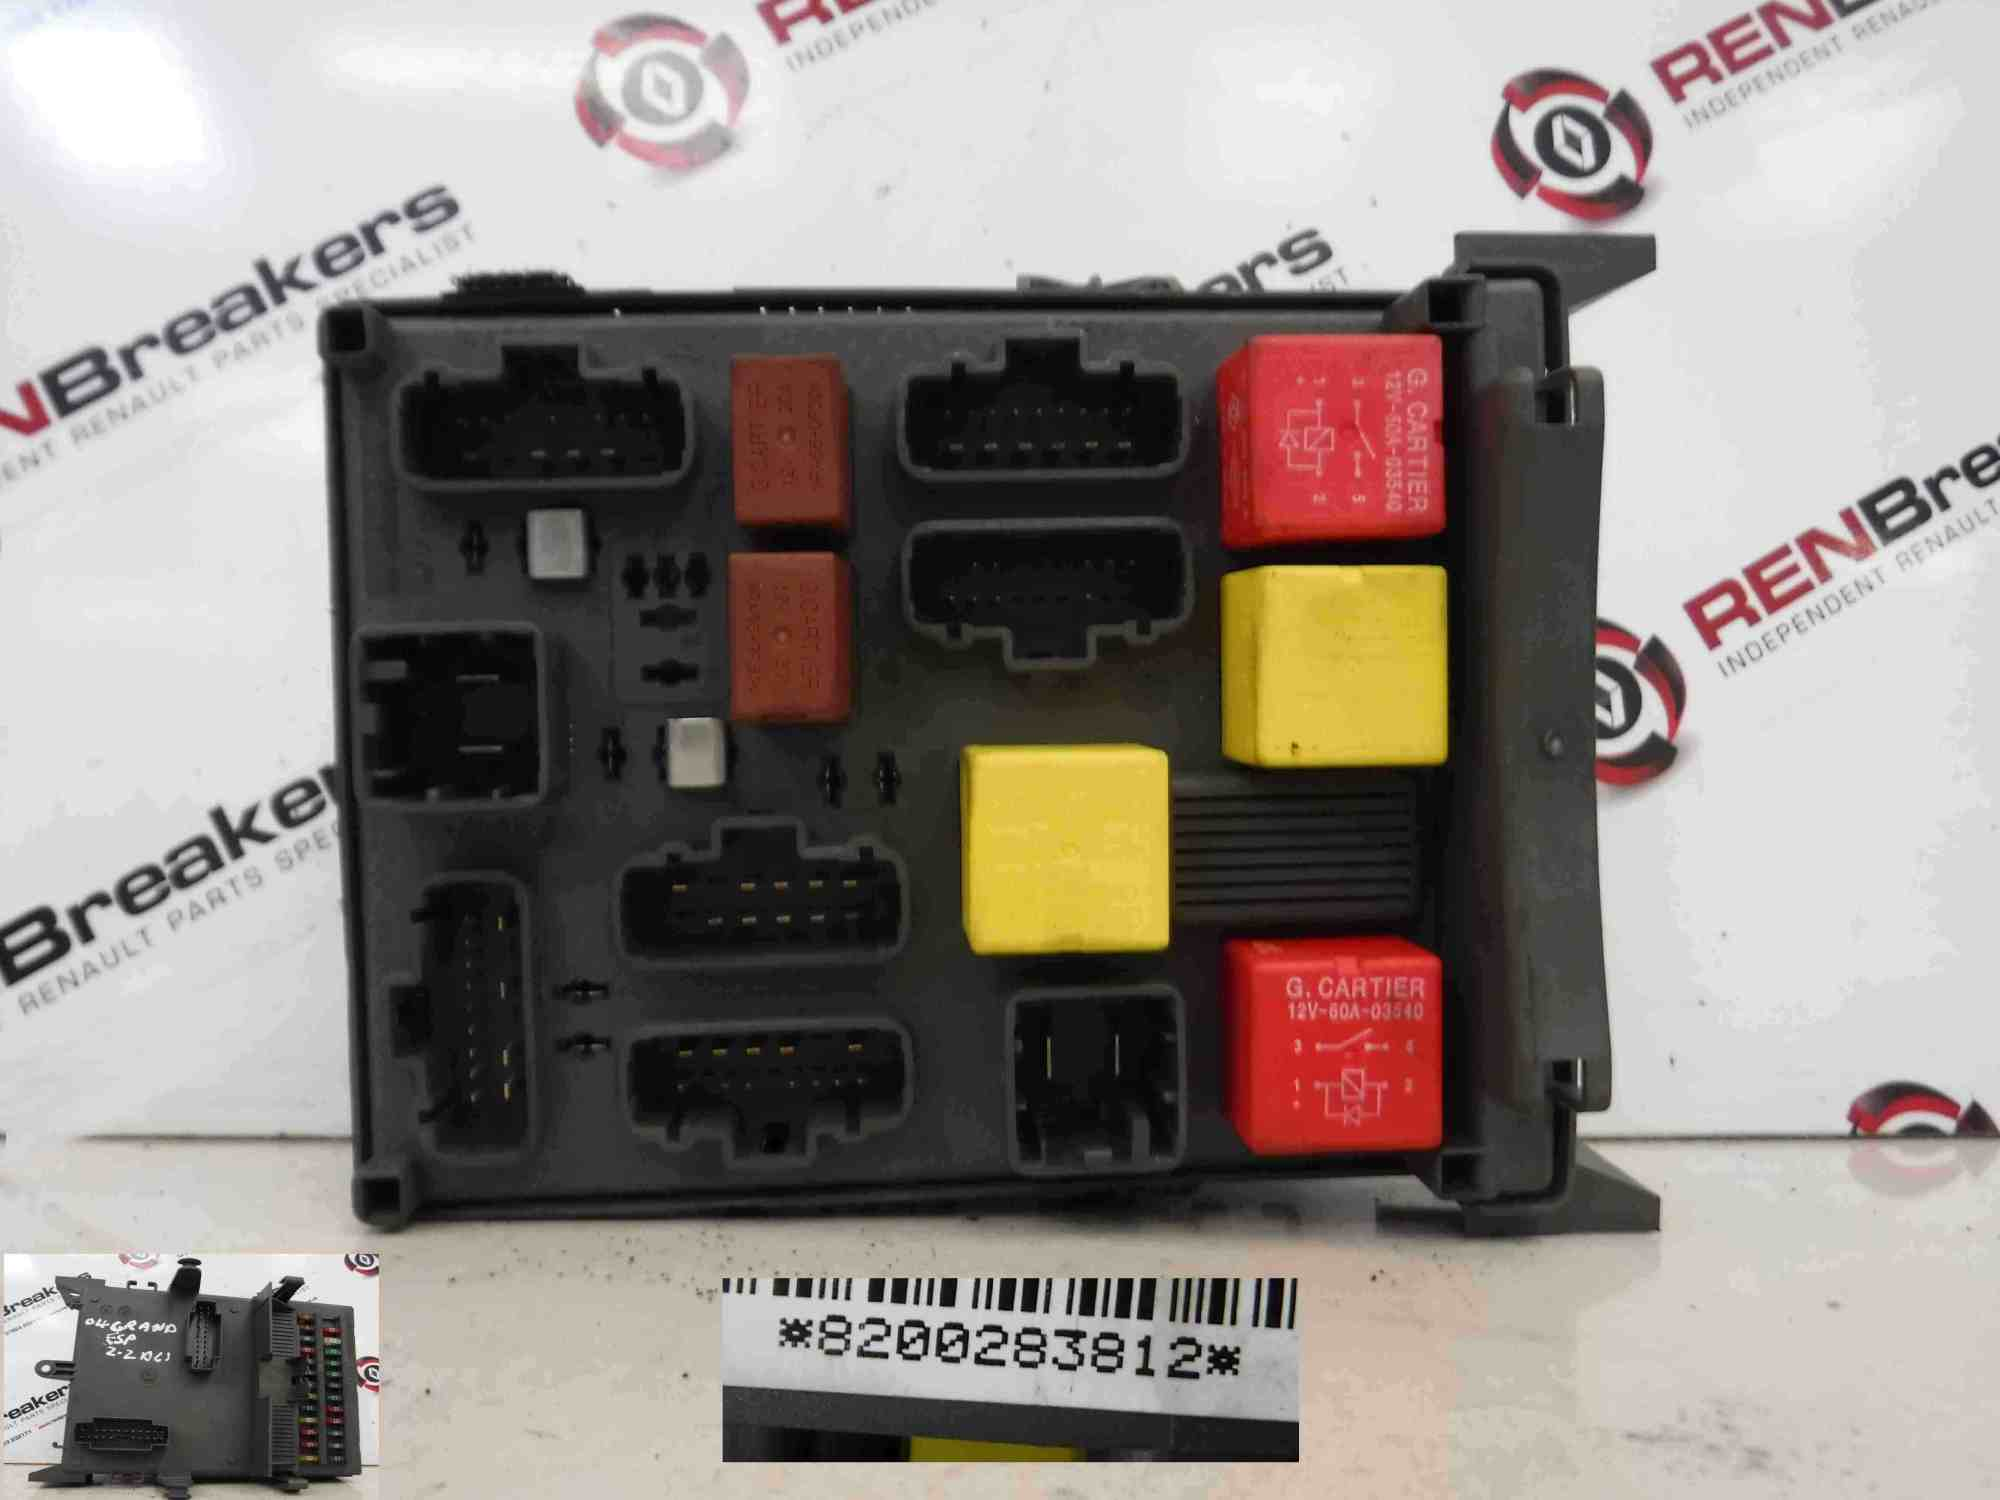 hight resolution of renault espace 2003 2013 interior dashboad fuse box relay computer 8200283812